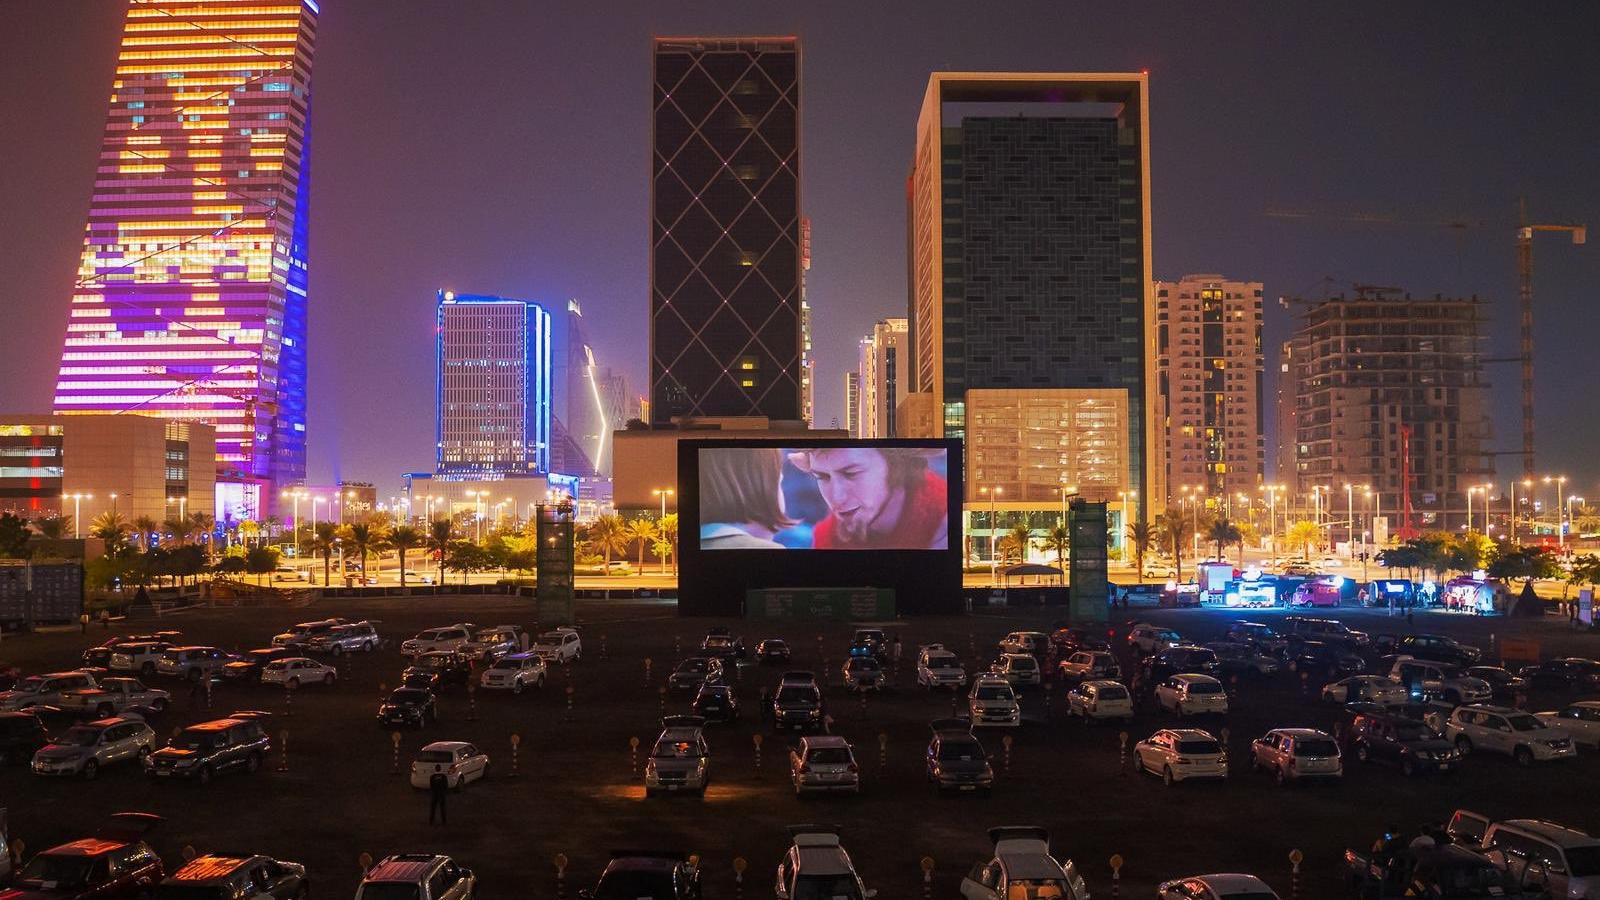 The 8th Ajyal Film Festival features drive-in cinema in Lusail